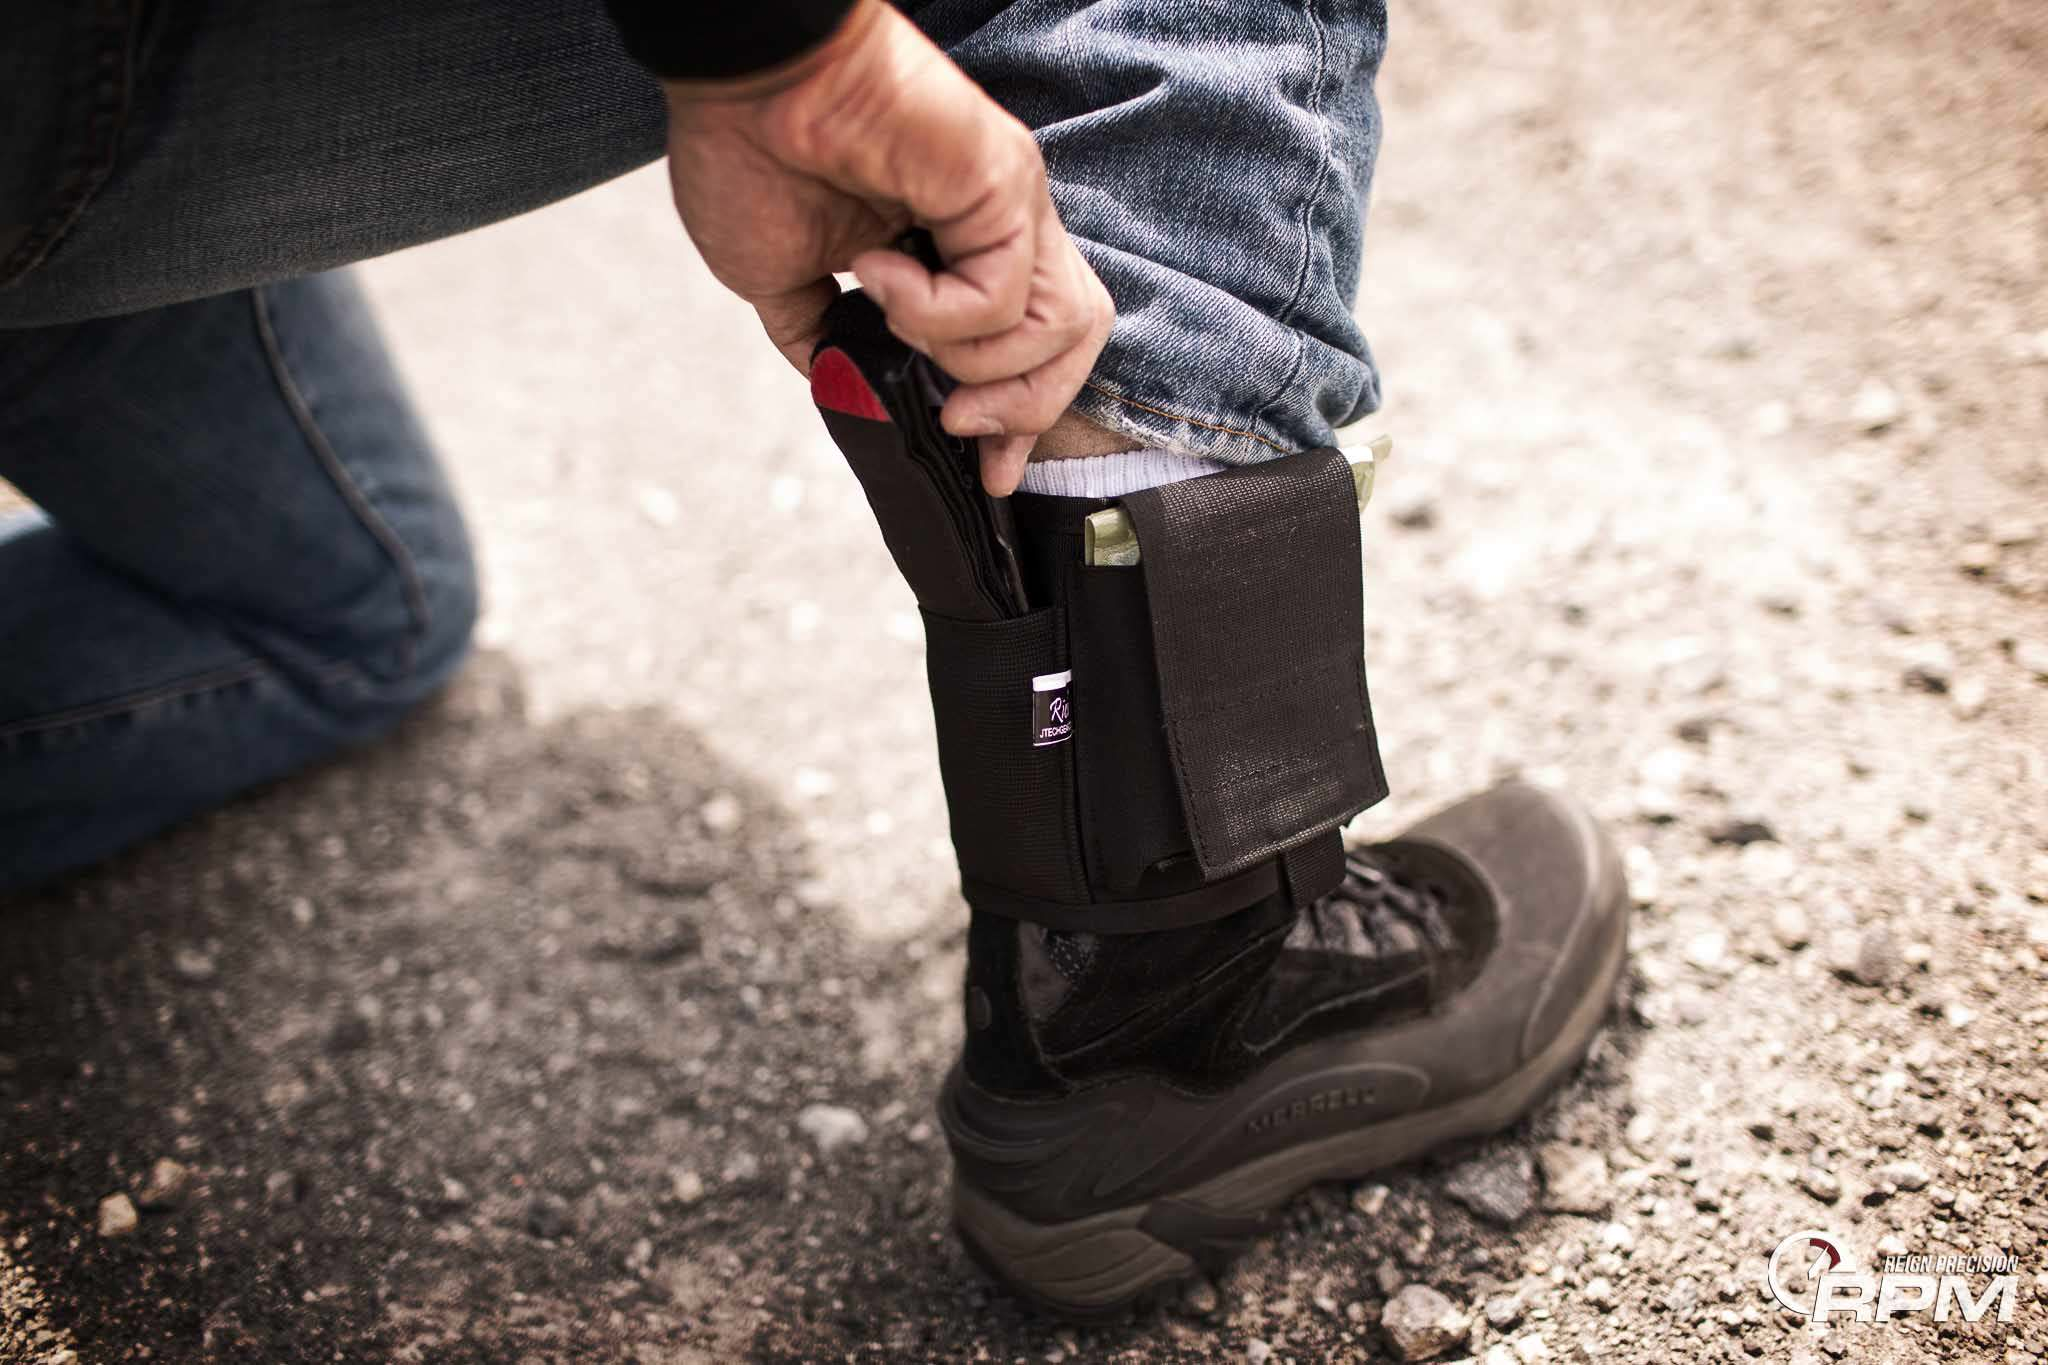 Strike Industries Ankle Med System Ver. 2 Review ...